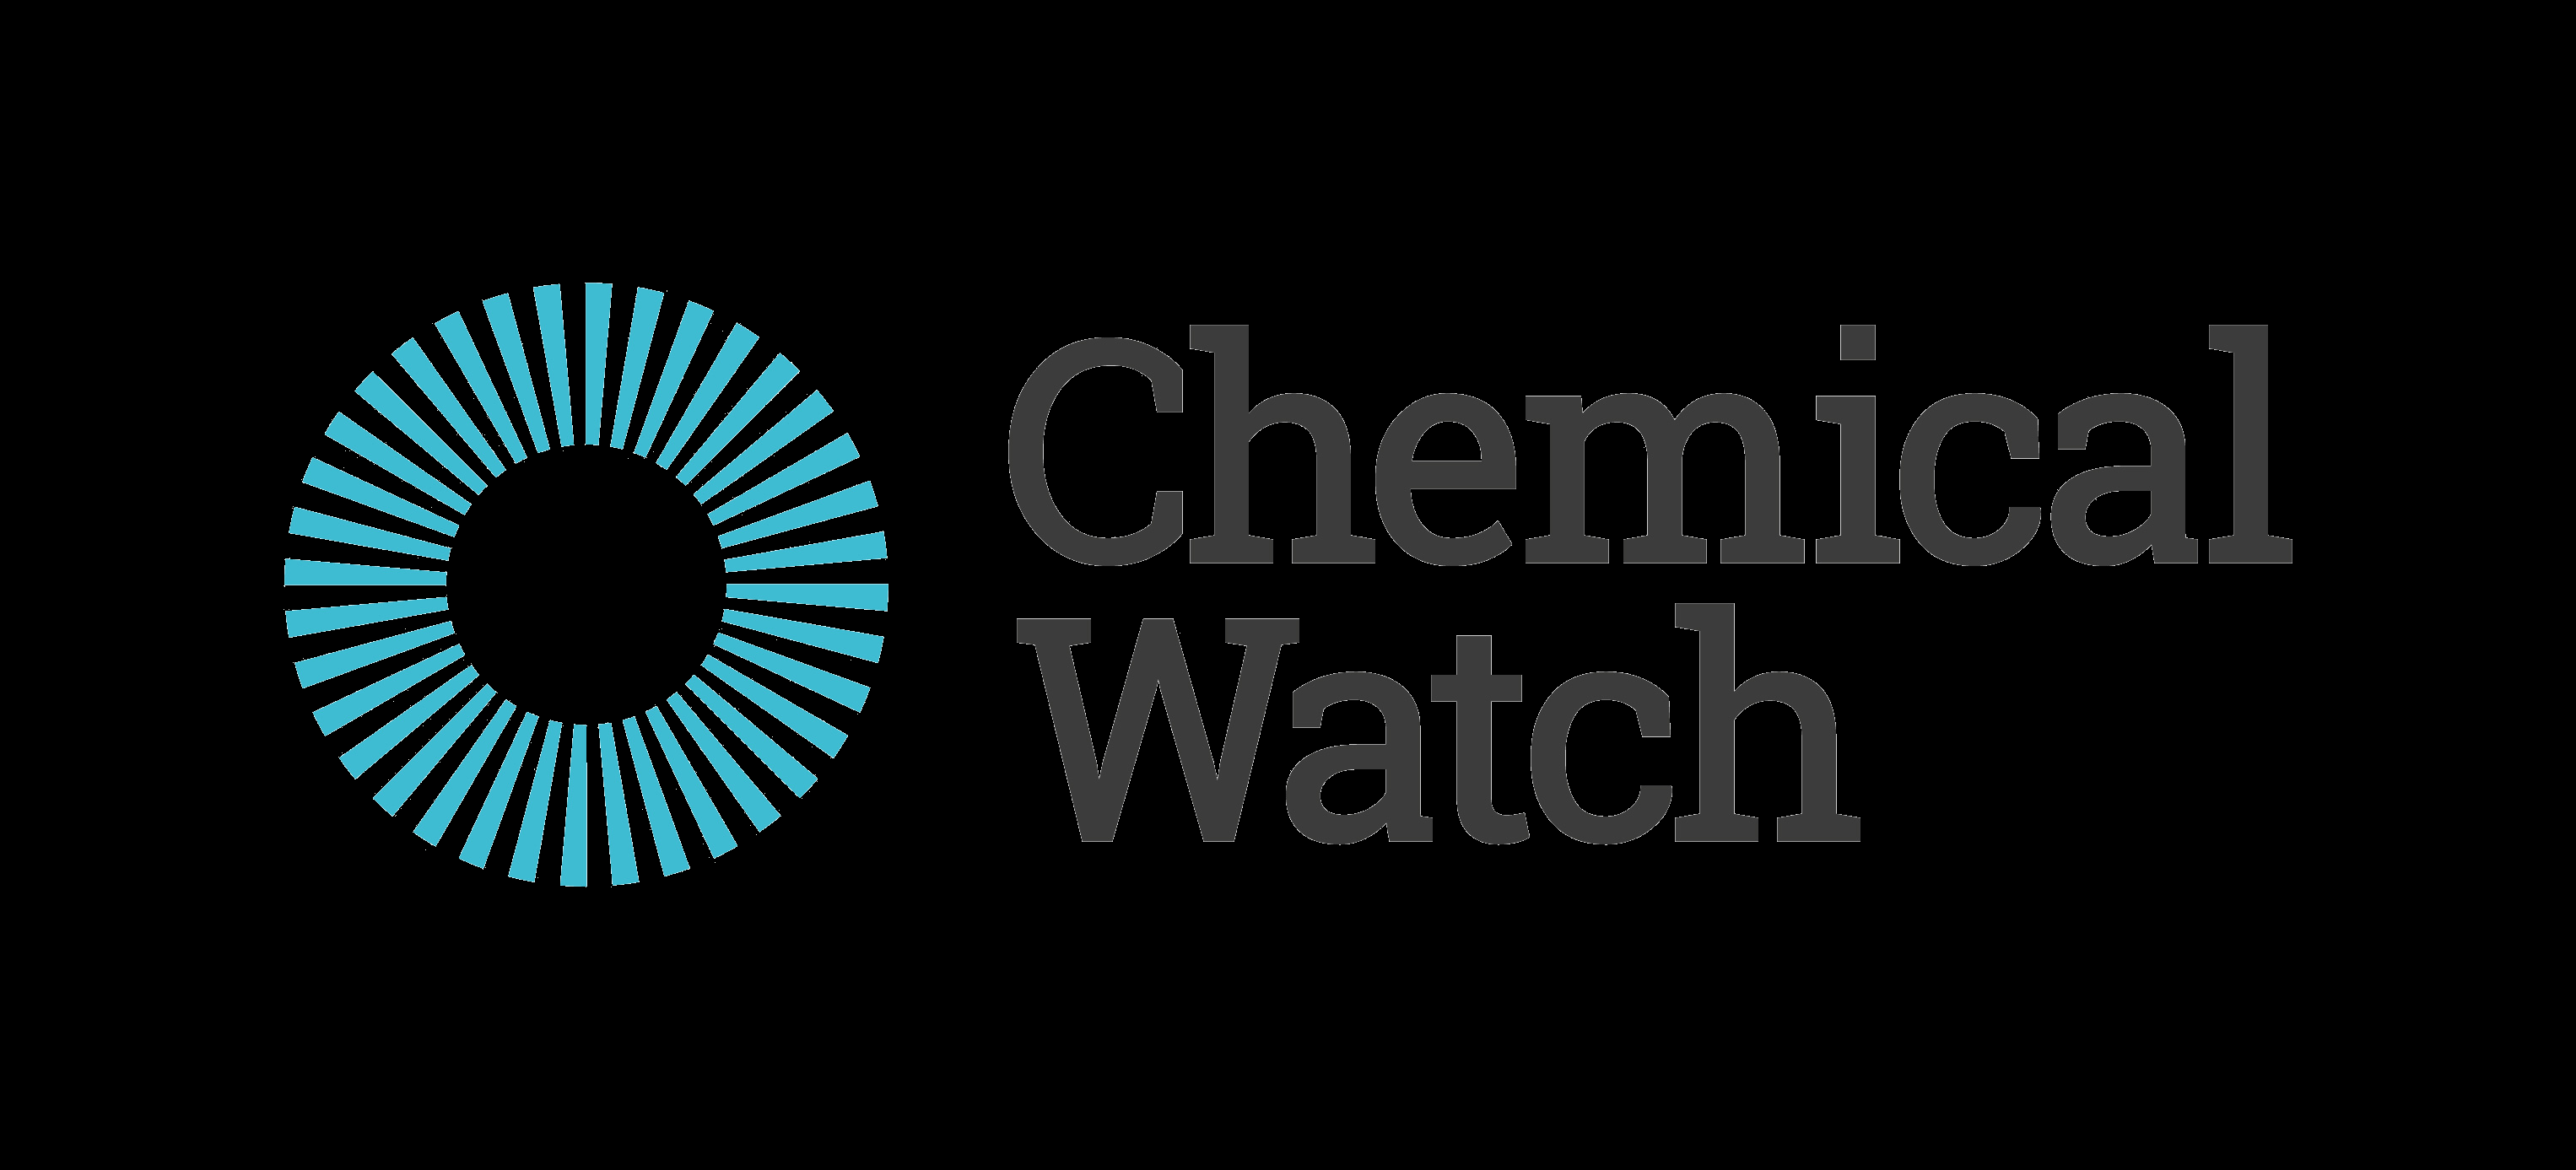 Chemical Watch - Checkout